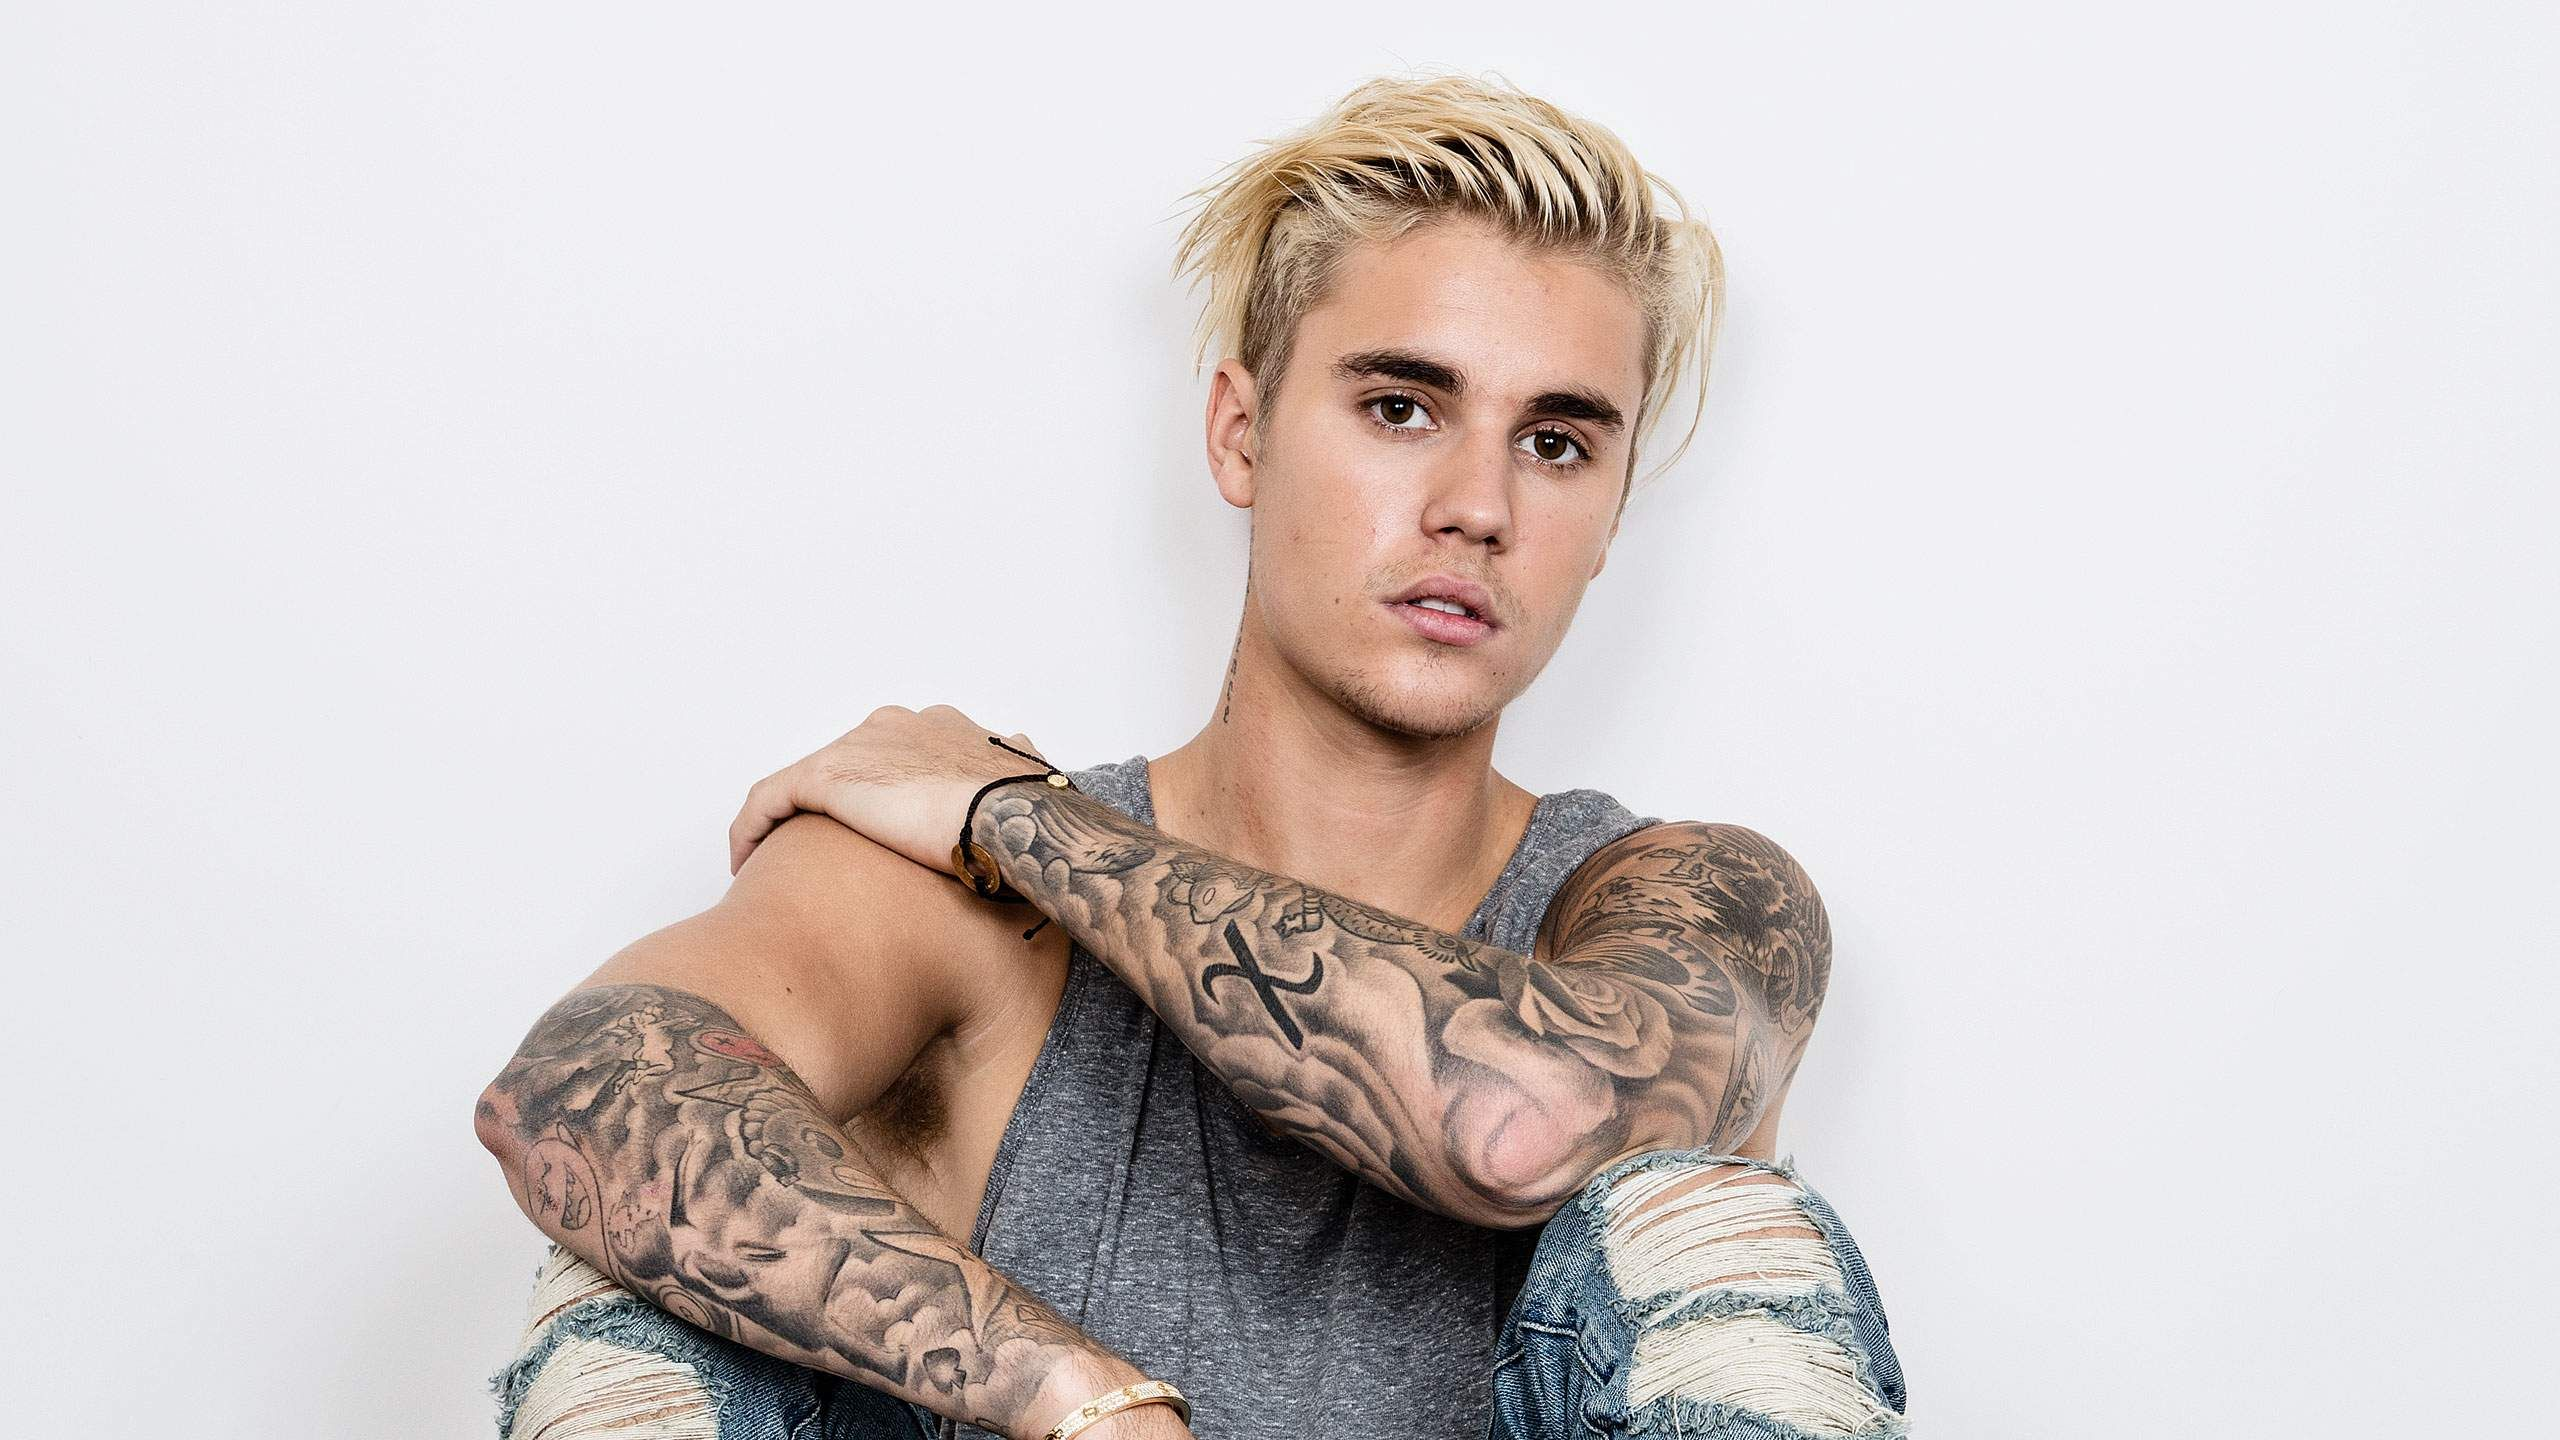 Justin Bieber Proves He Has Purpose With Jaw Dropping New Album